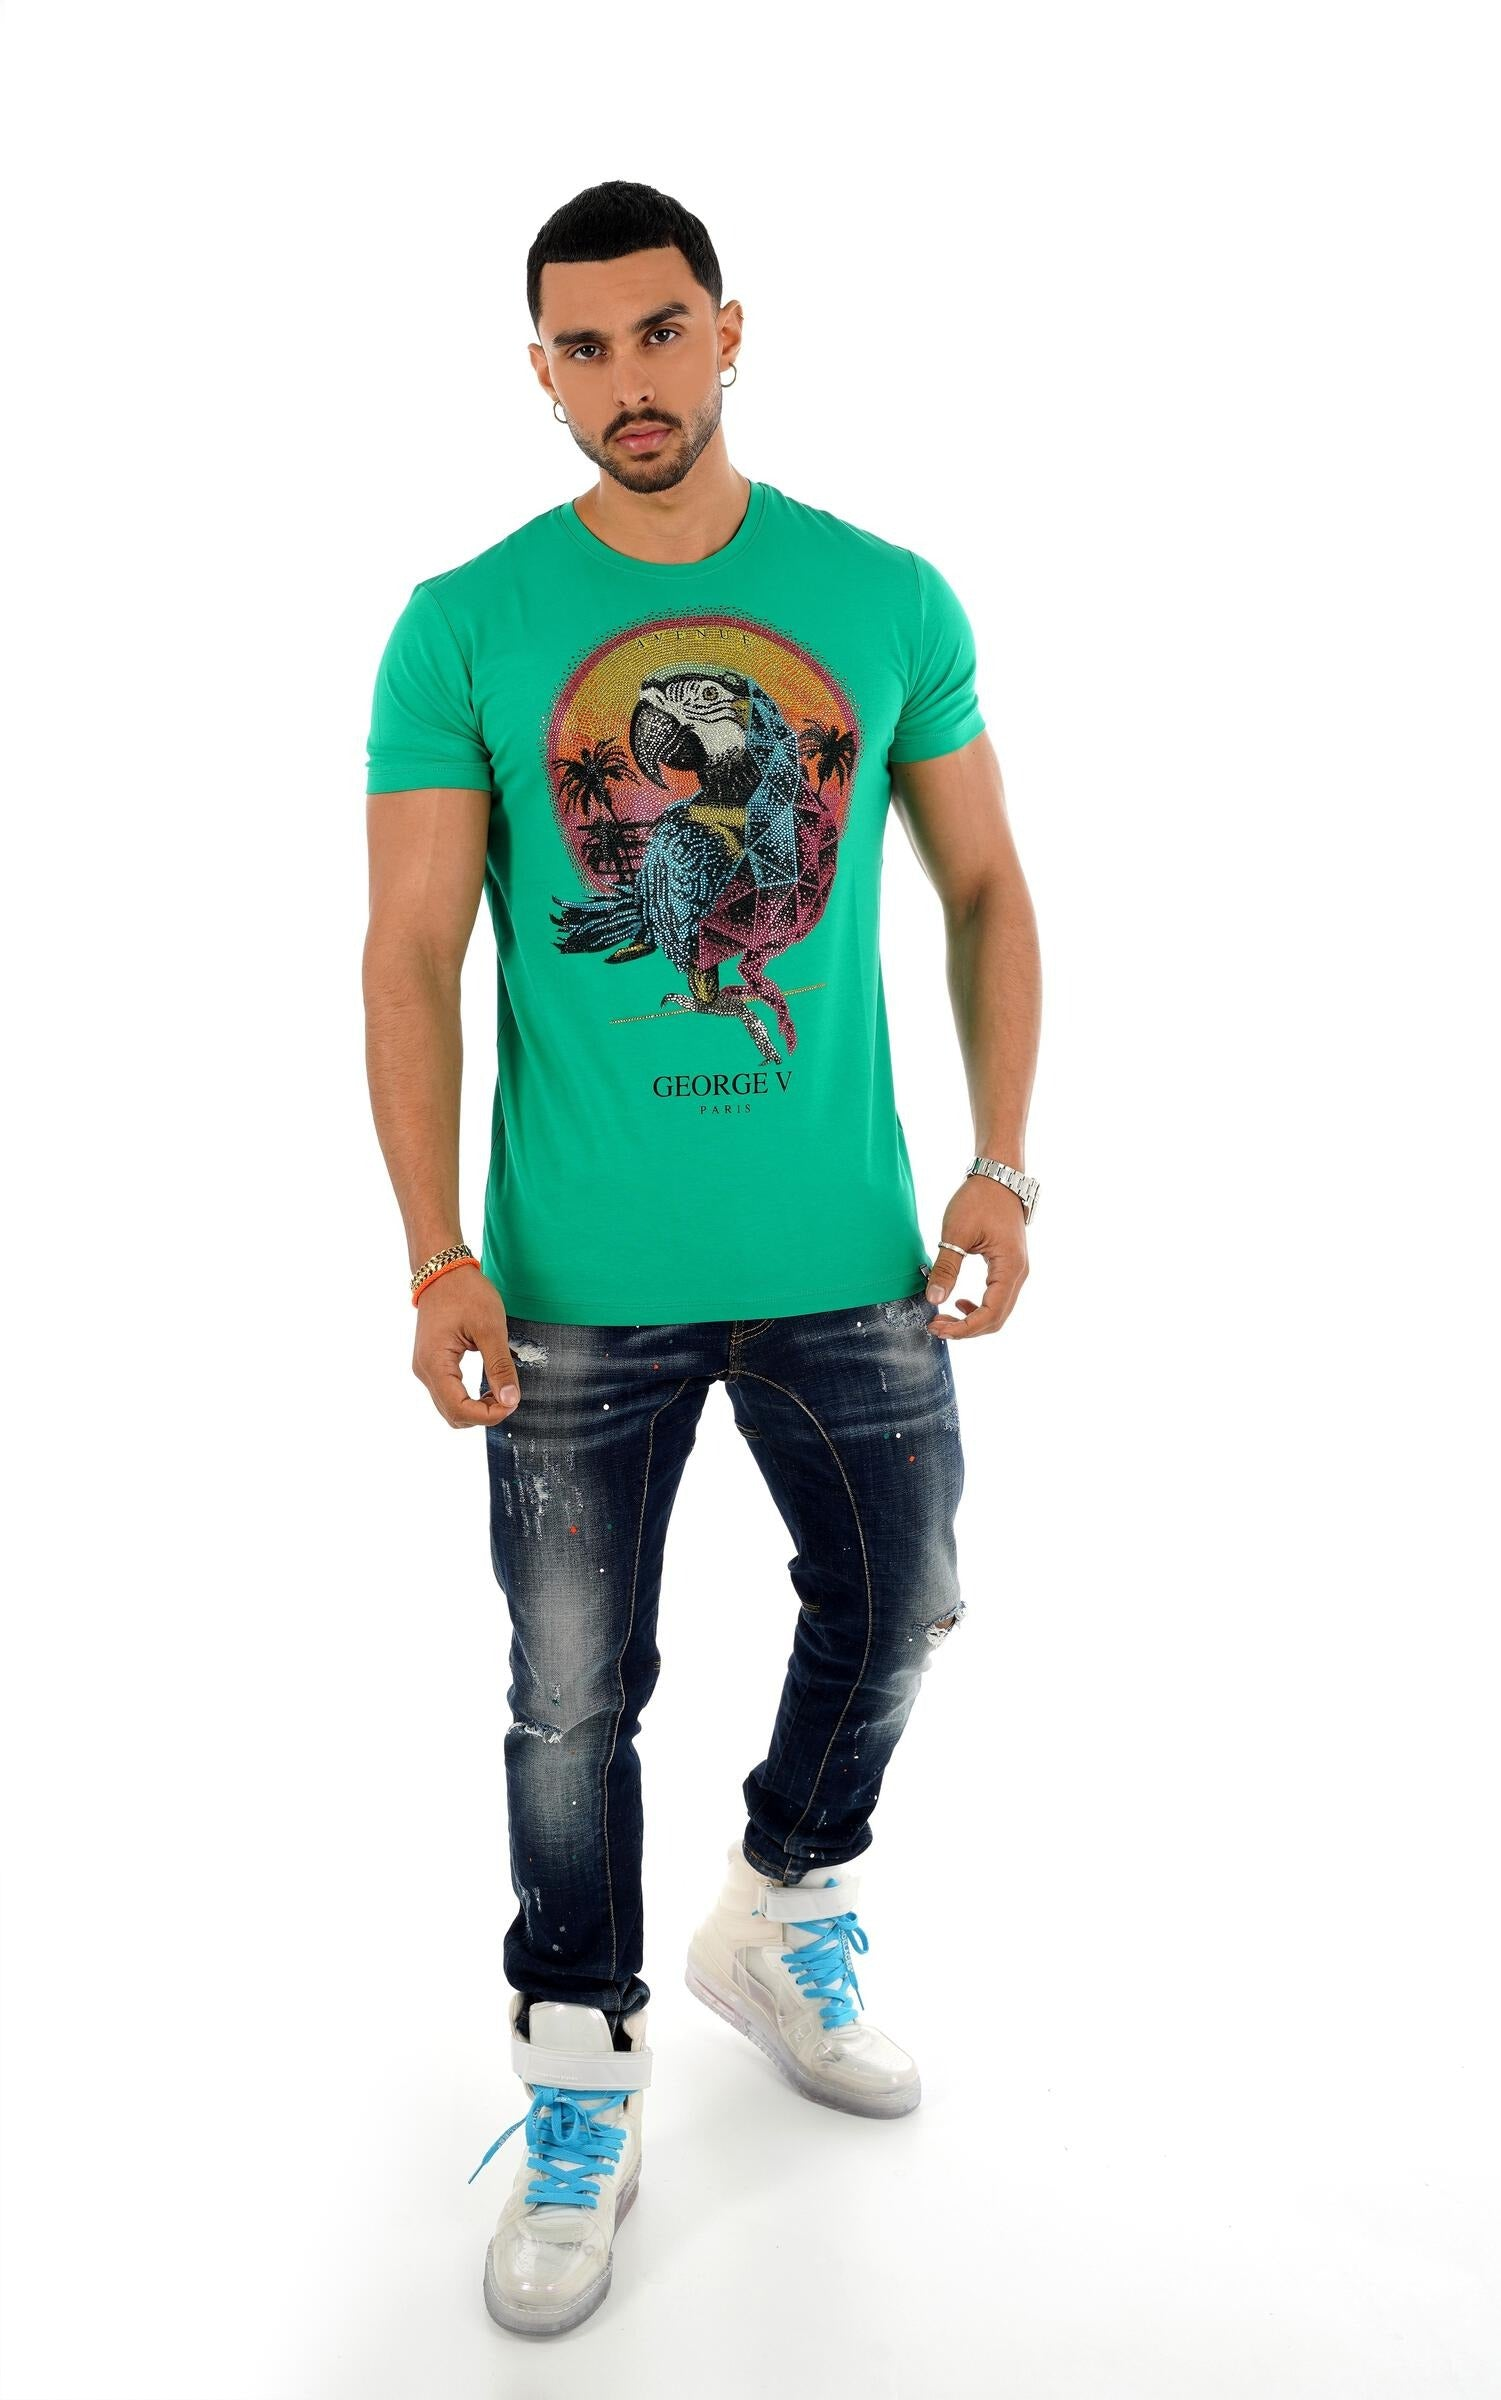 George V T-Shirt - FLY GUYZ